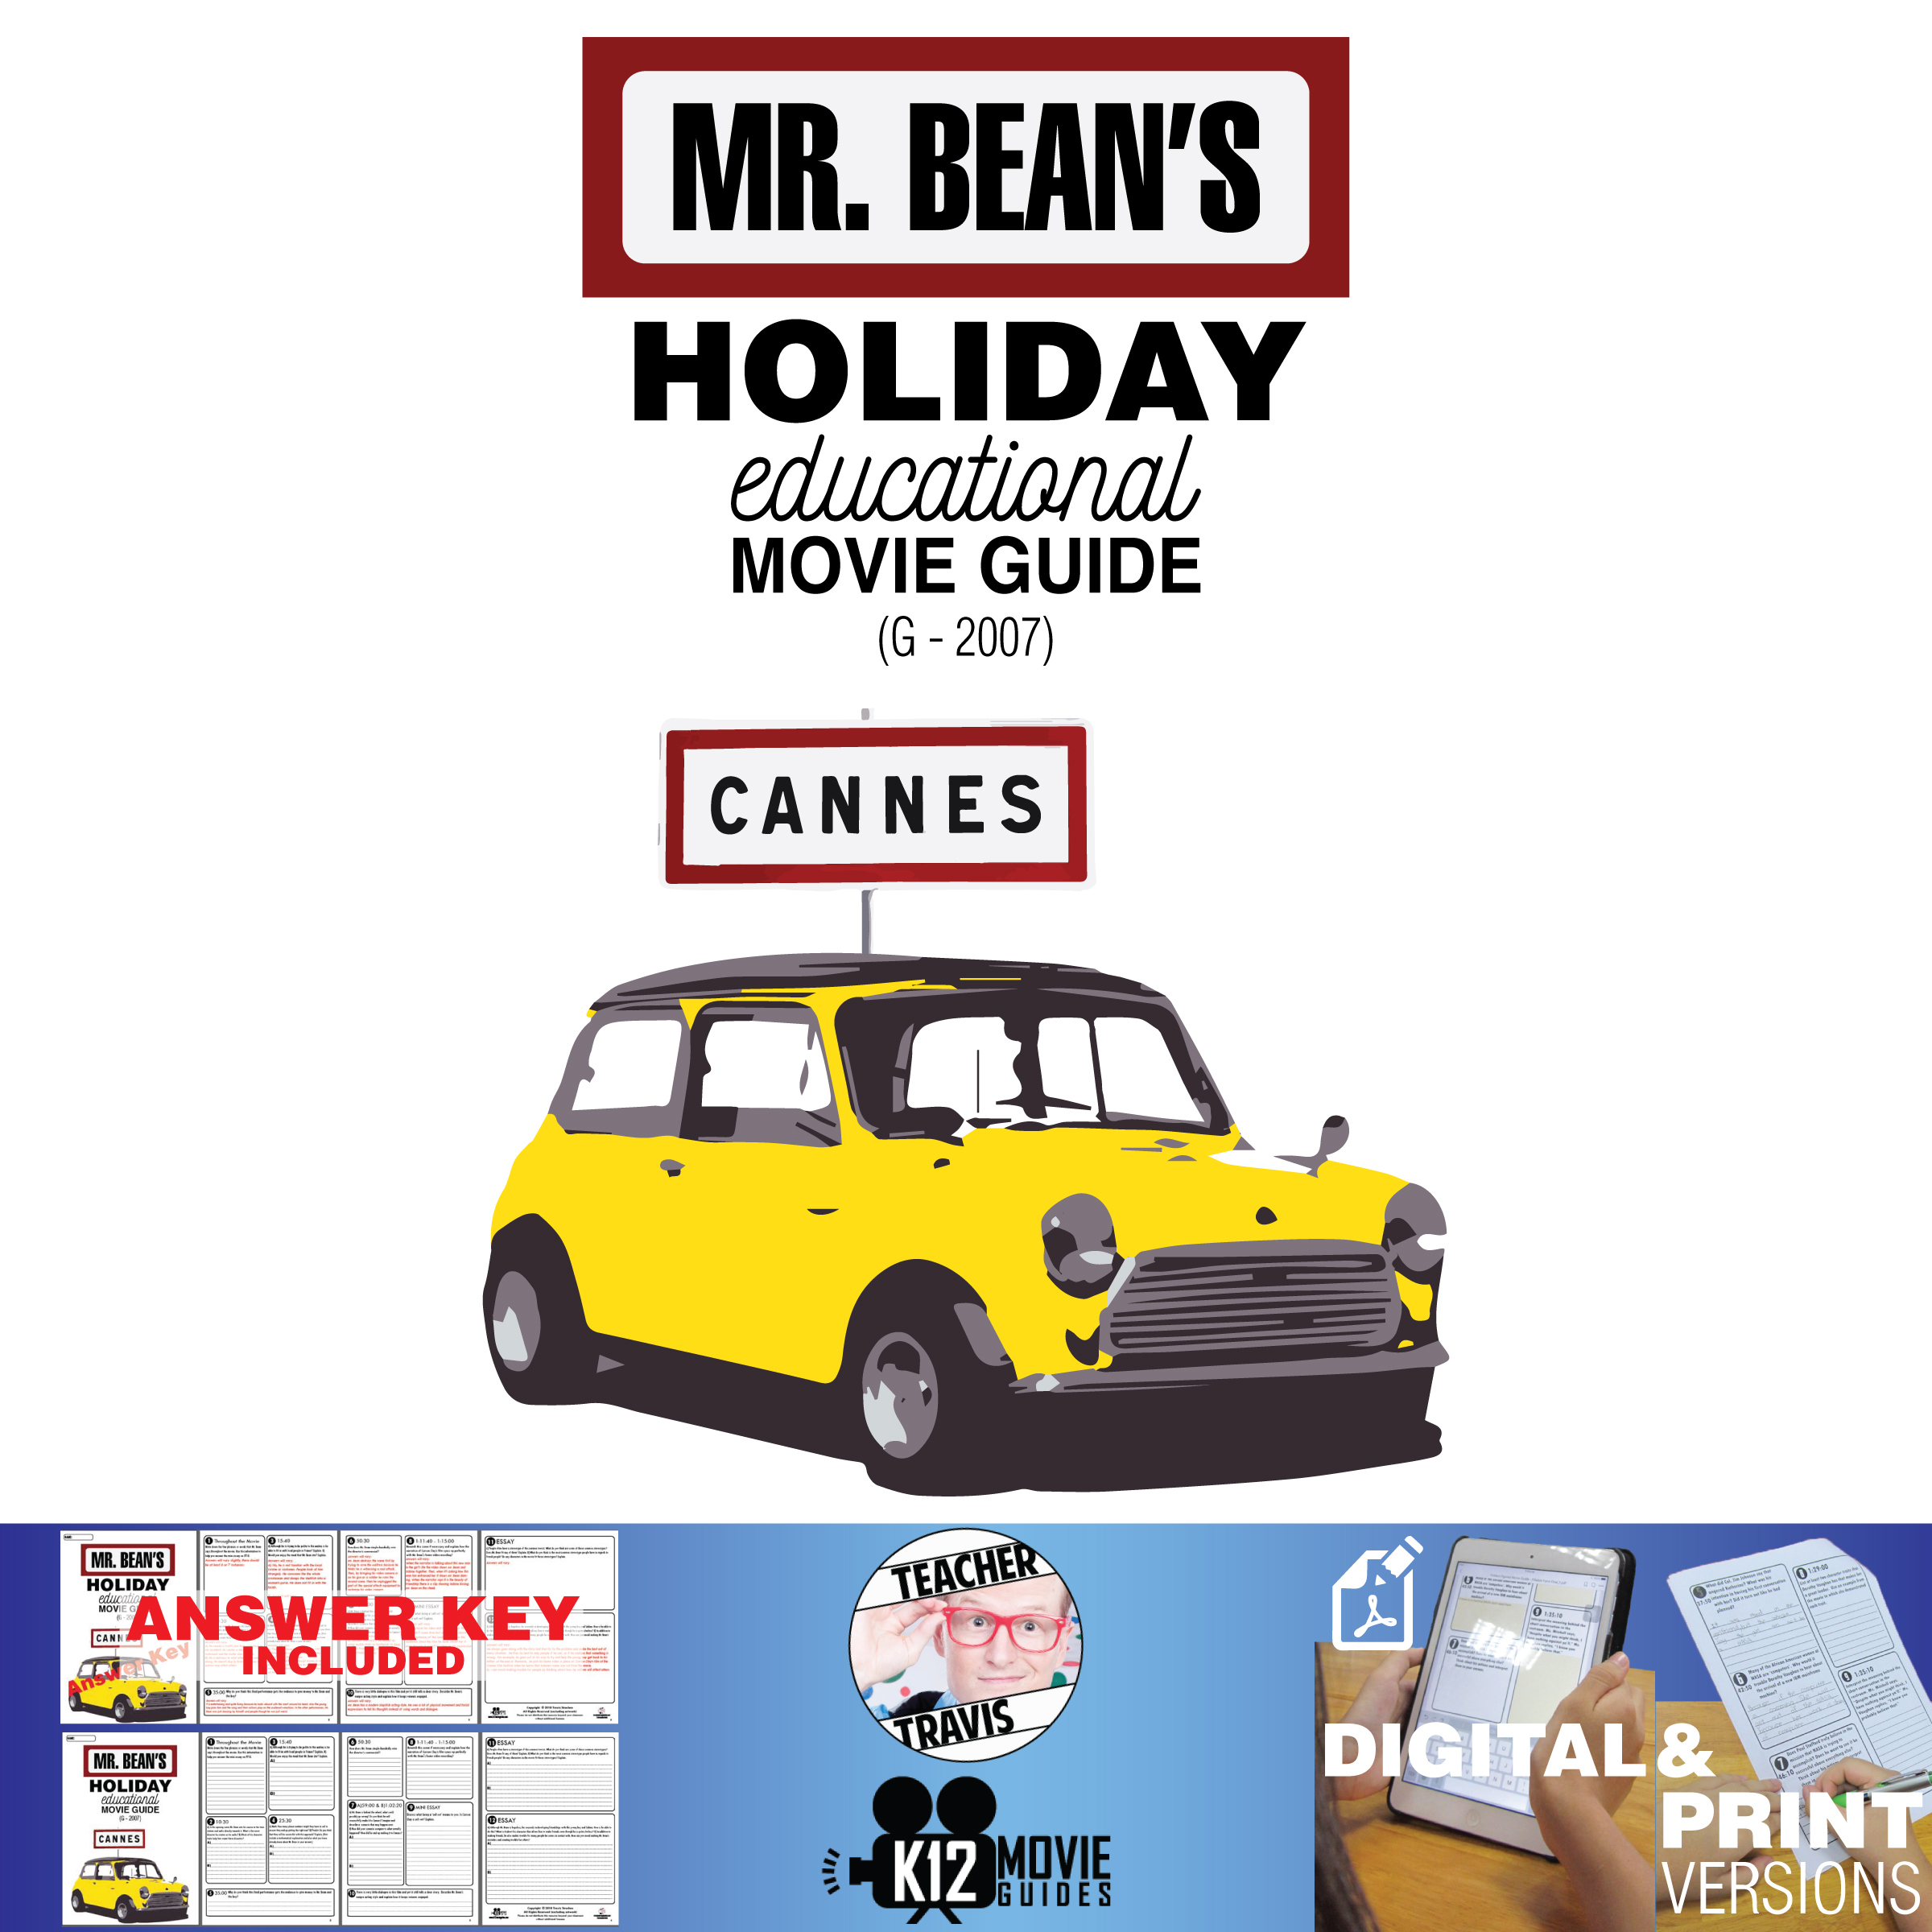 Mr. Bean's Holiday Movie Guide | Questions | Worksheet (G - 2007) Cover